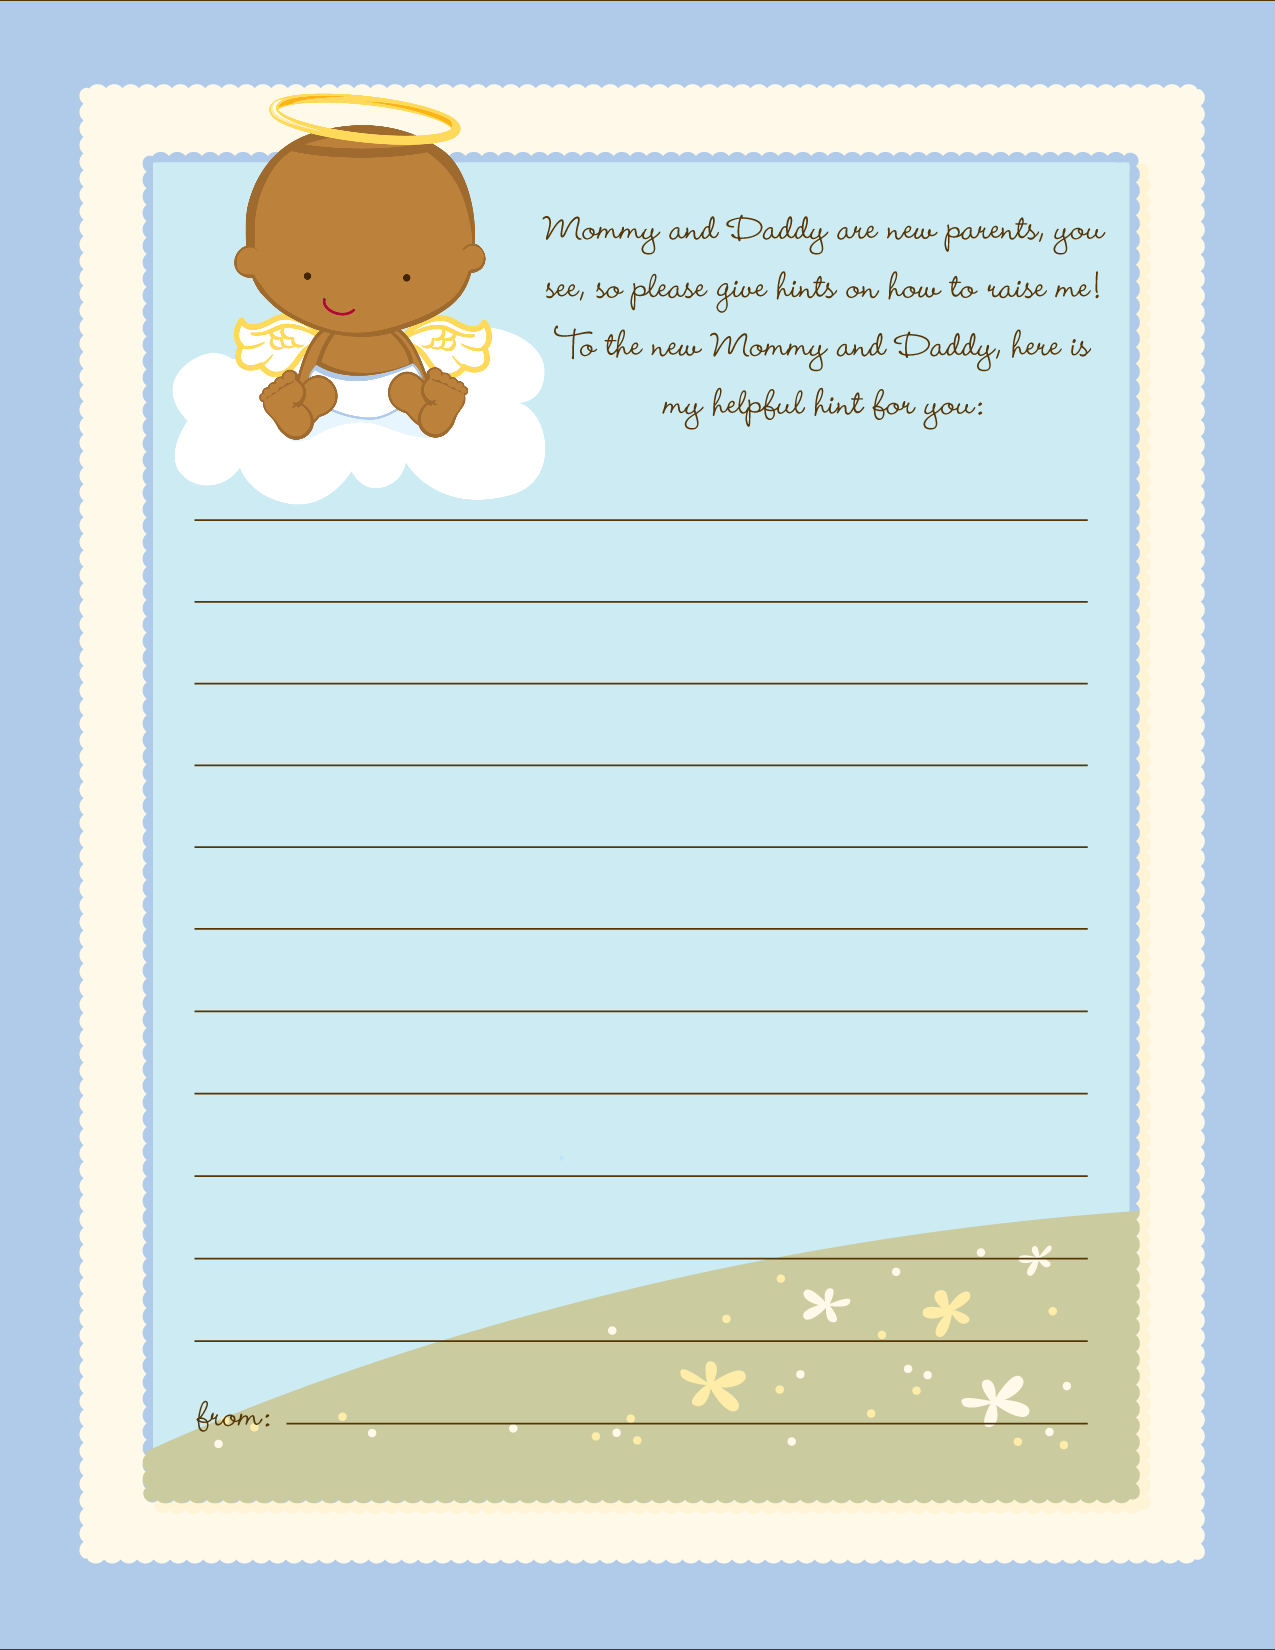 Angel in the Cloud Boy - Baby Shower Notes of Advice Caucasian